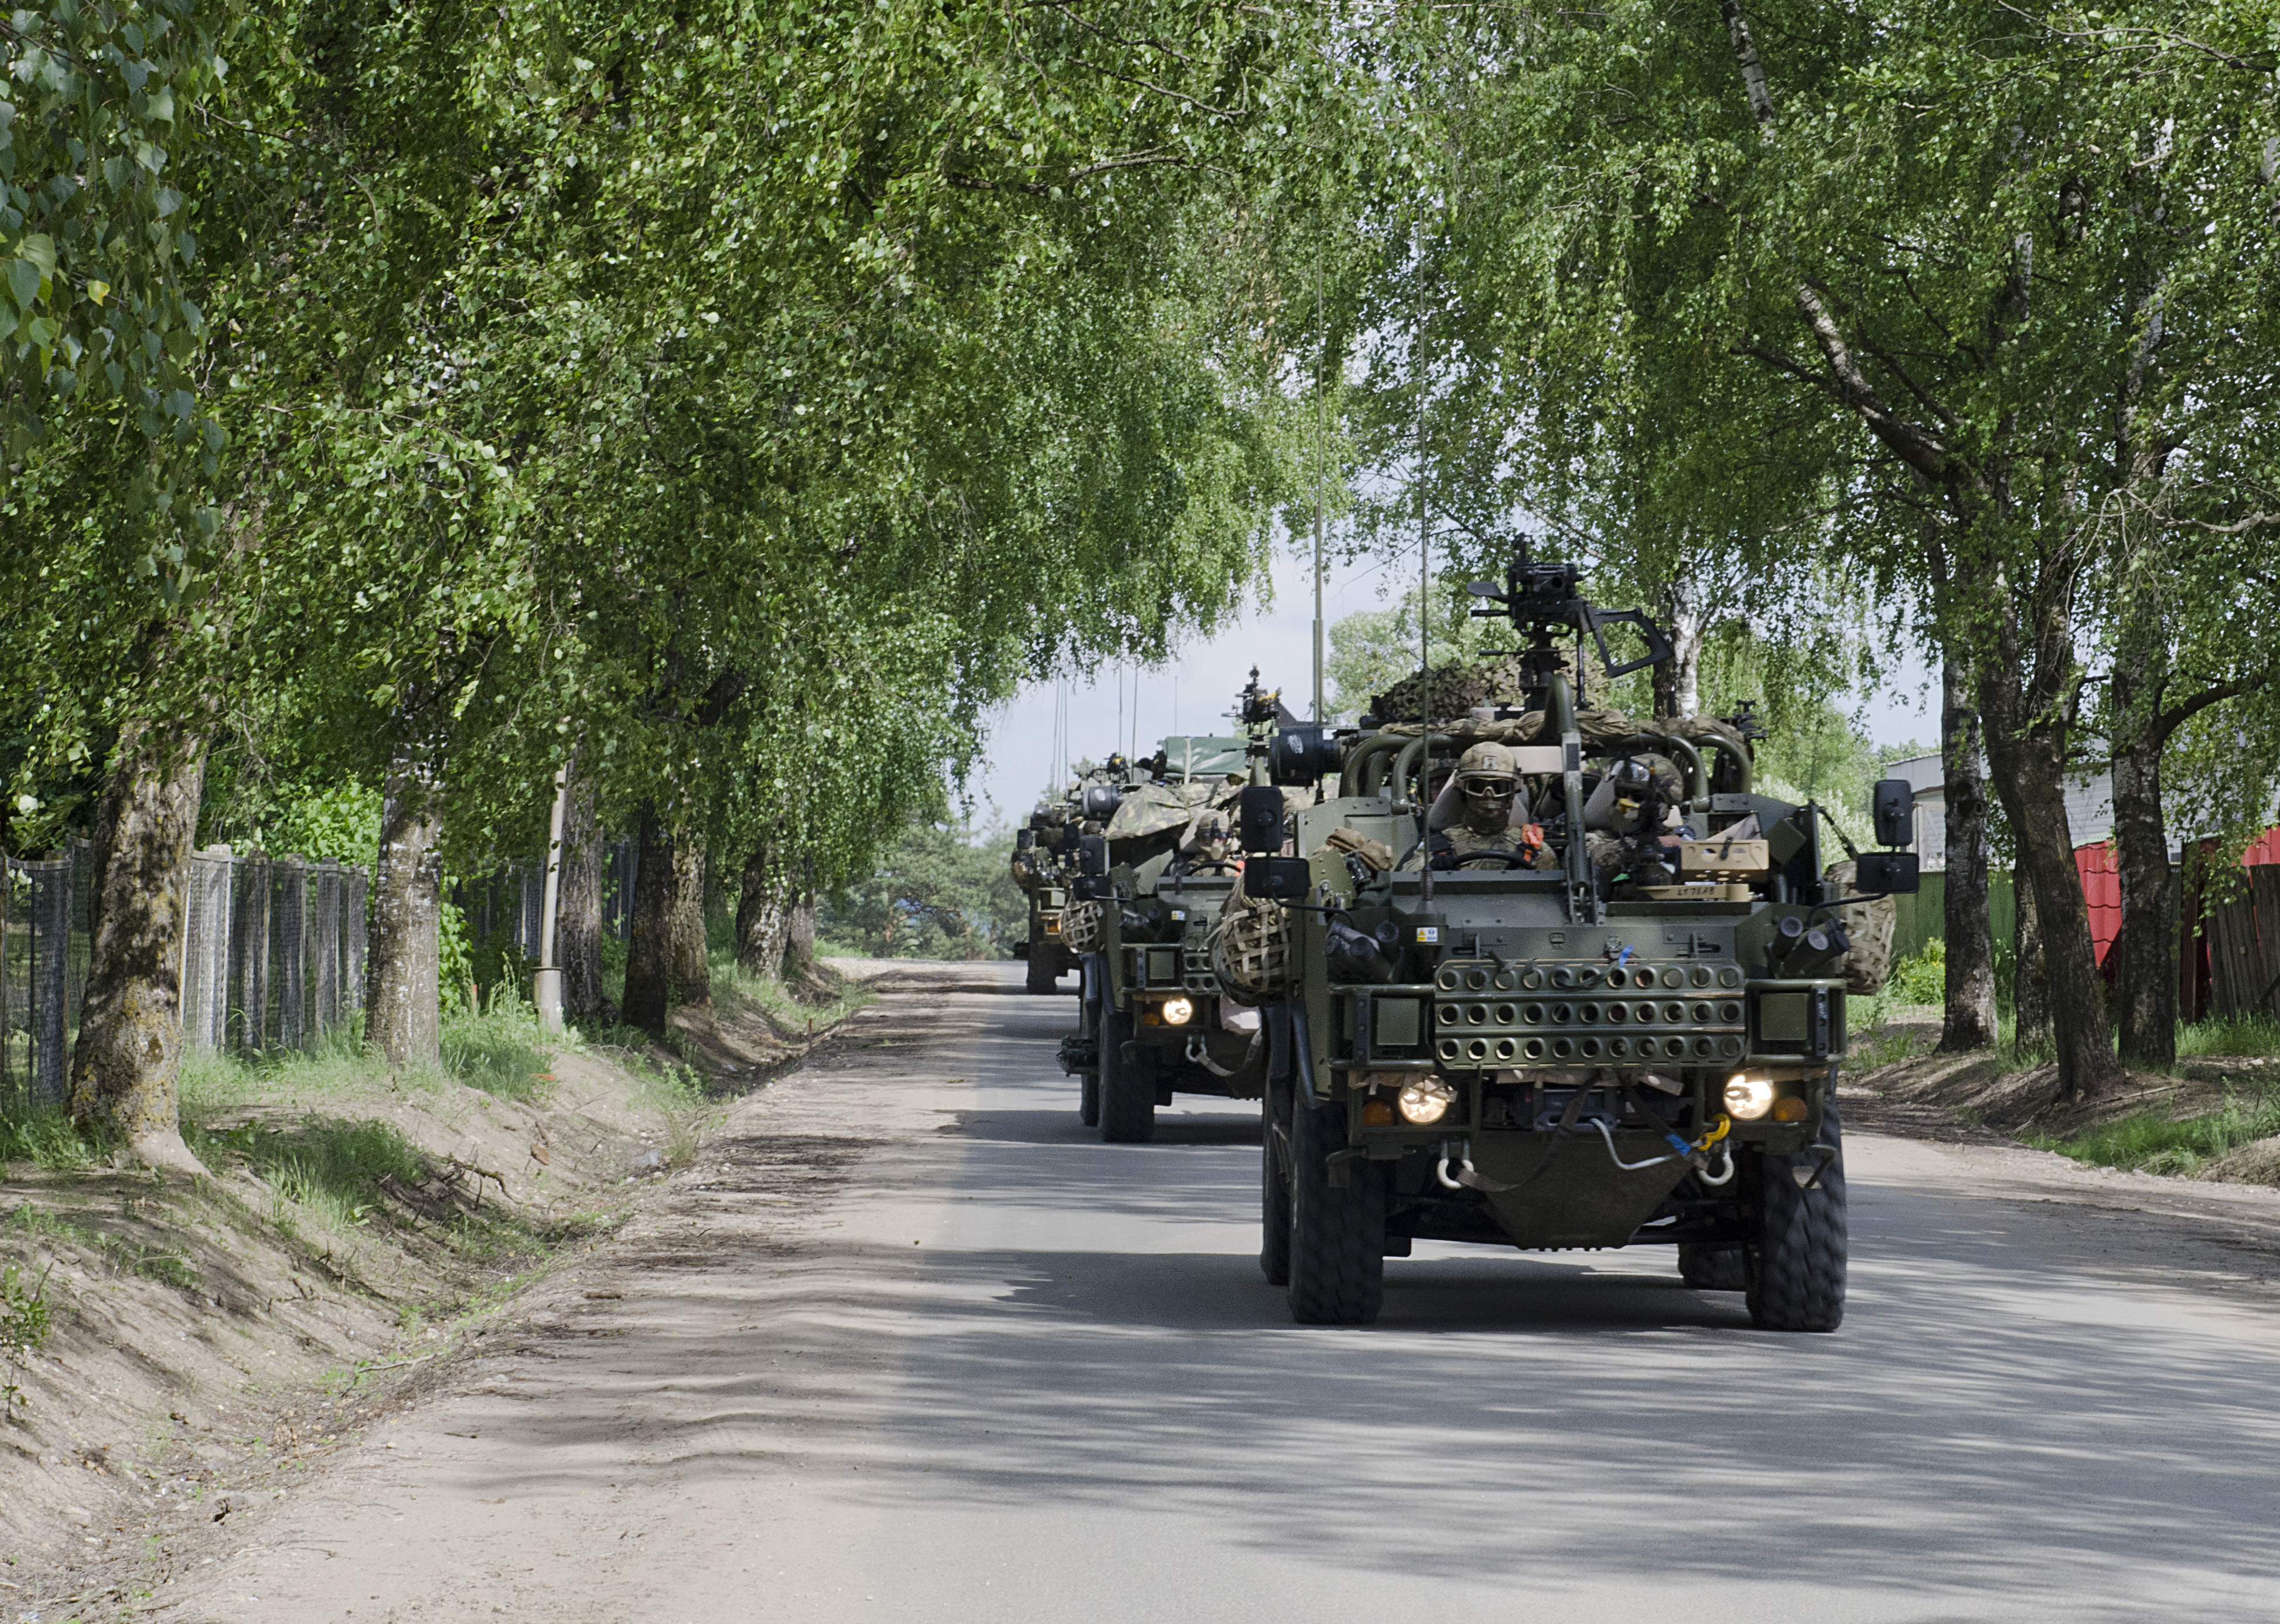 British Soldiers with Enhanced Forward Presence Battle Group Poland arrived to Rukla, Lithuania after a two-day tactical road march across Eastern Europe, June 18, 2017, as part of Saber Strike 17. The Poland-based Battle Group conducted the convoy portion of the Field Training Exercise to demonstrate their ability to execute a forward passage of lines across the only land connection between the Baltic States of Estonia, Latvia and Lithuania, which is known as the Suwalki Gap. (U.S. Army photo by Sgt. Justin Geiger)